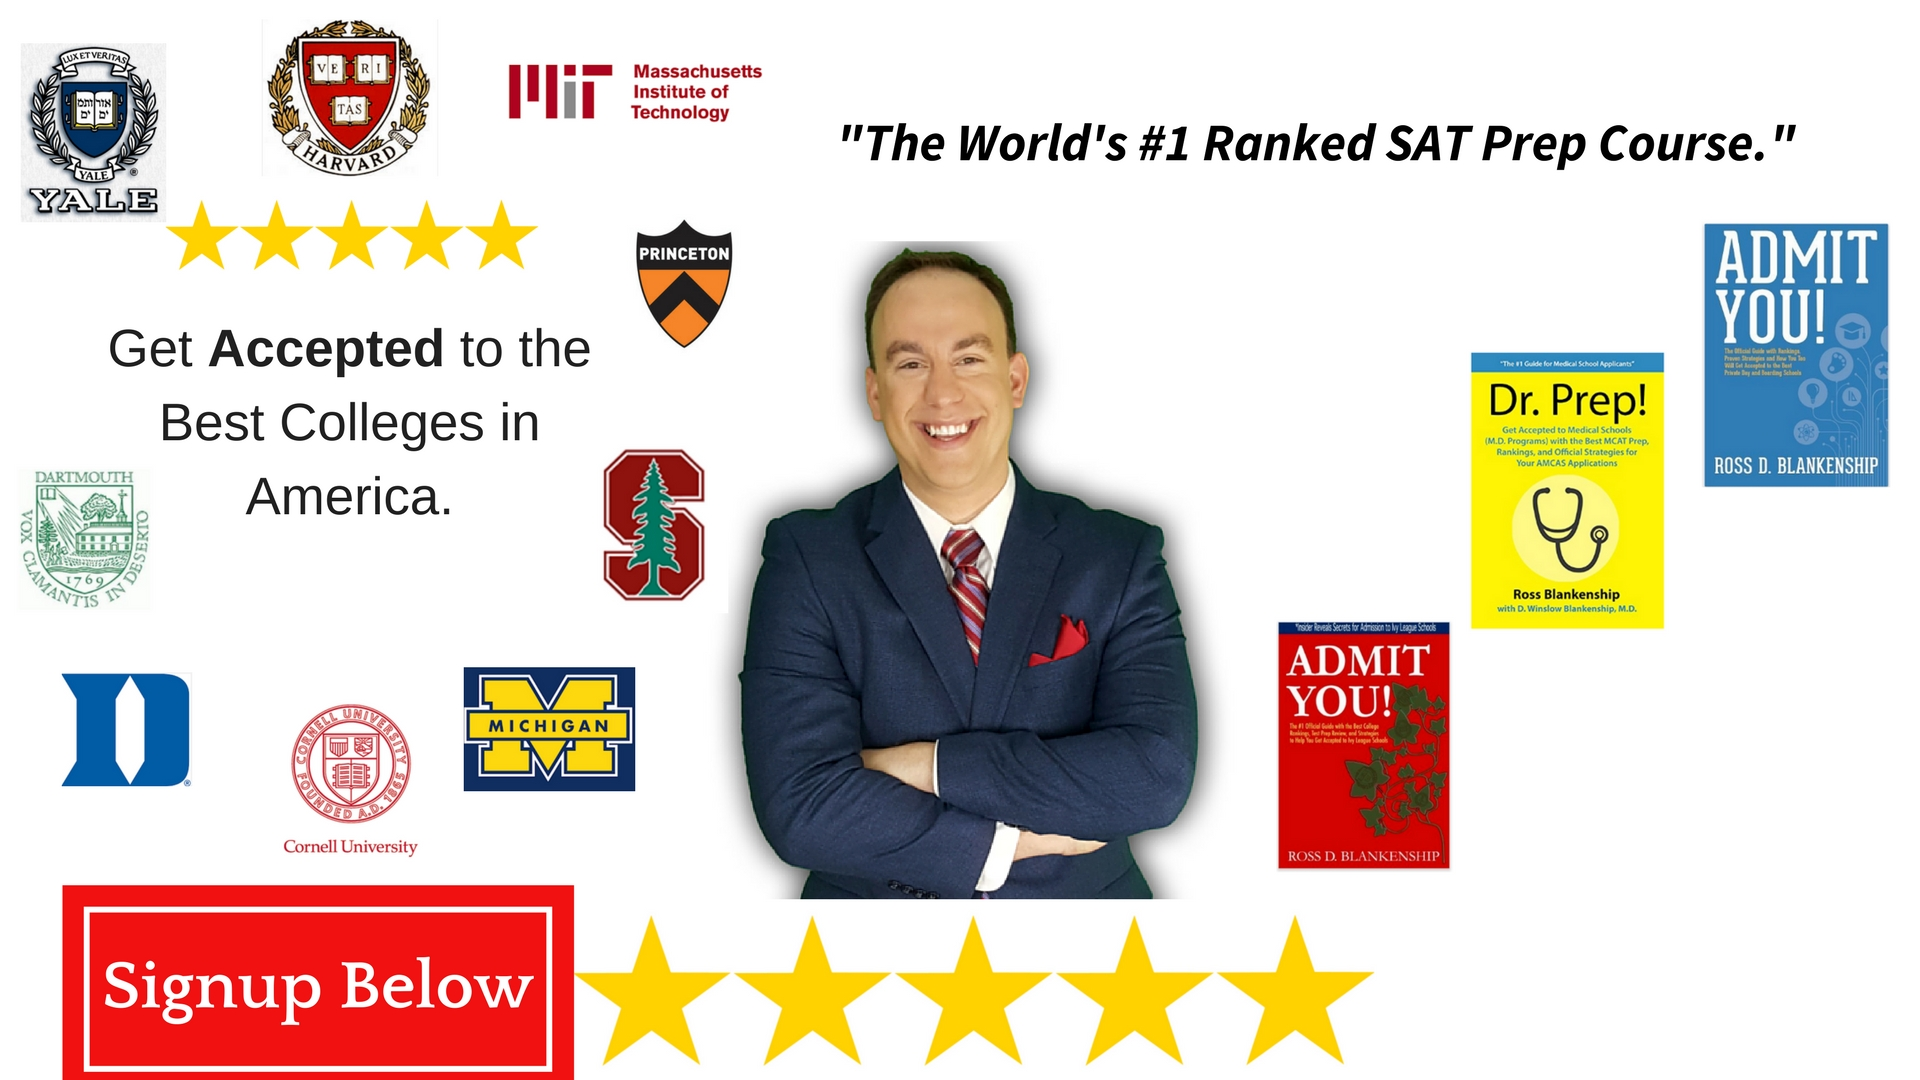 SAT Prep Course. Reviewed by Real Customers.